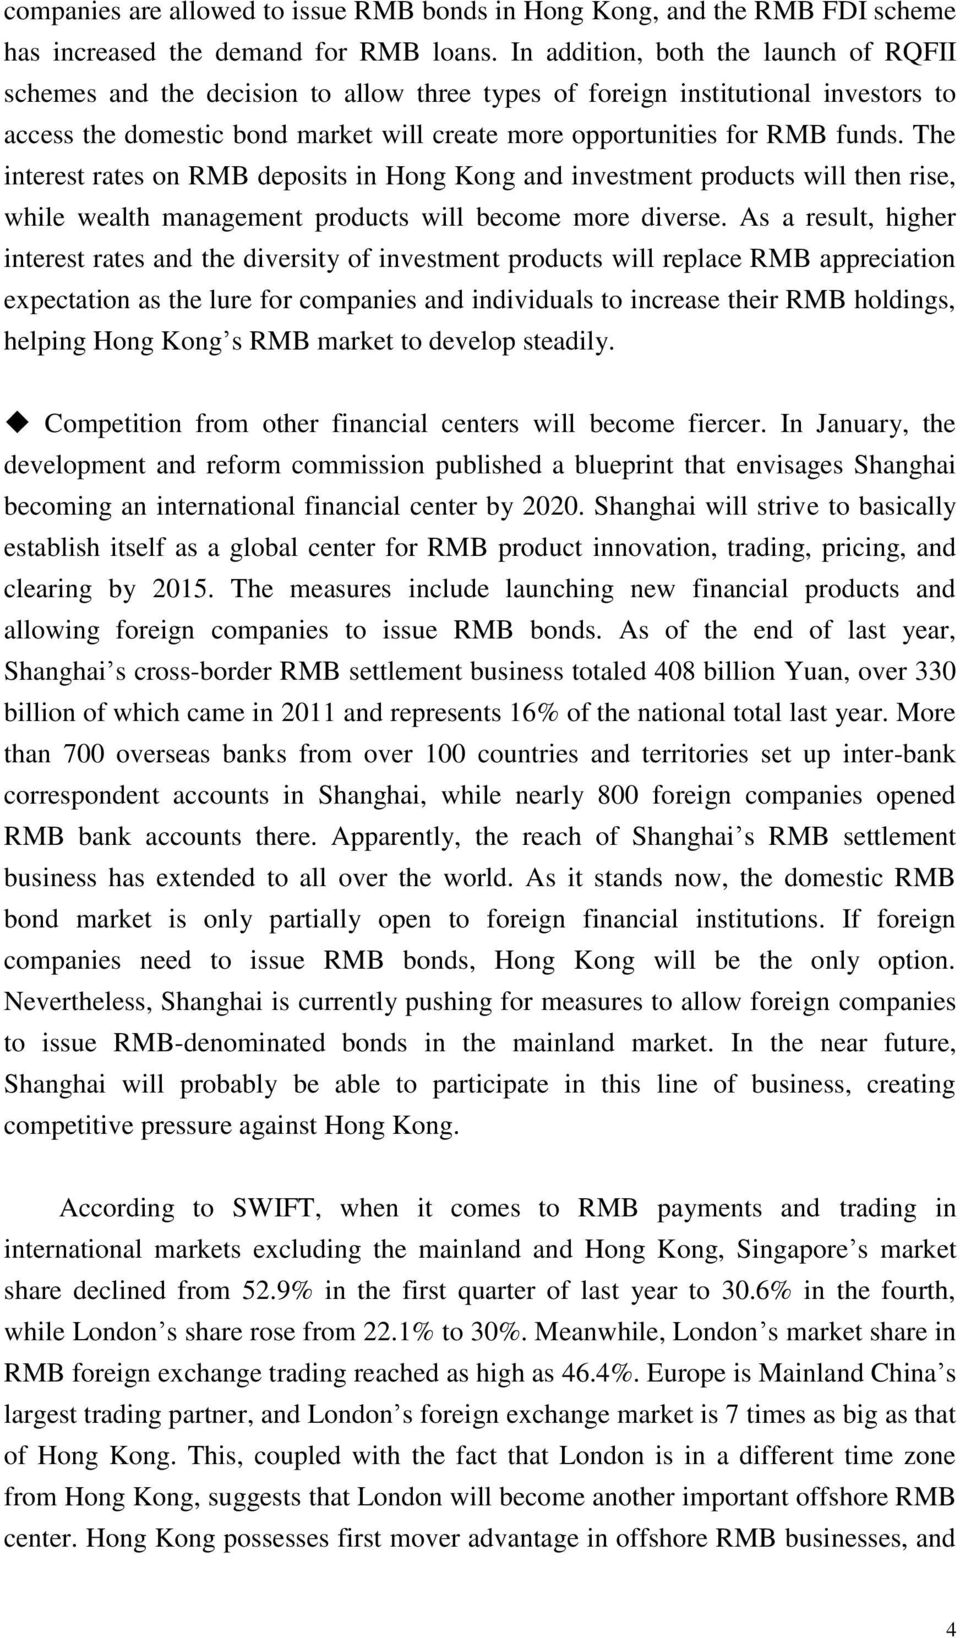 The interest rates on RMB deposits in Hong Kong and investment products will then rise, while wealth management products will become more diverse.